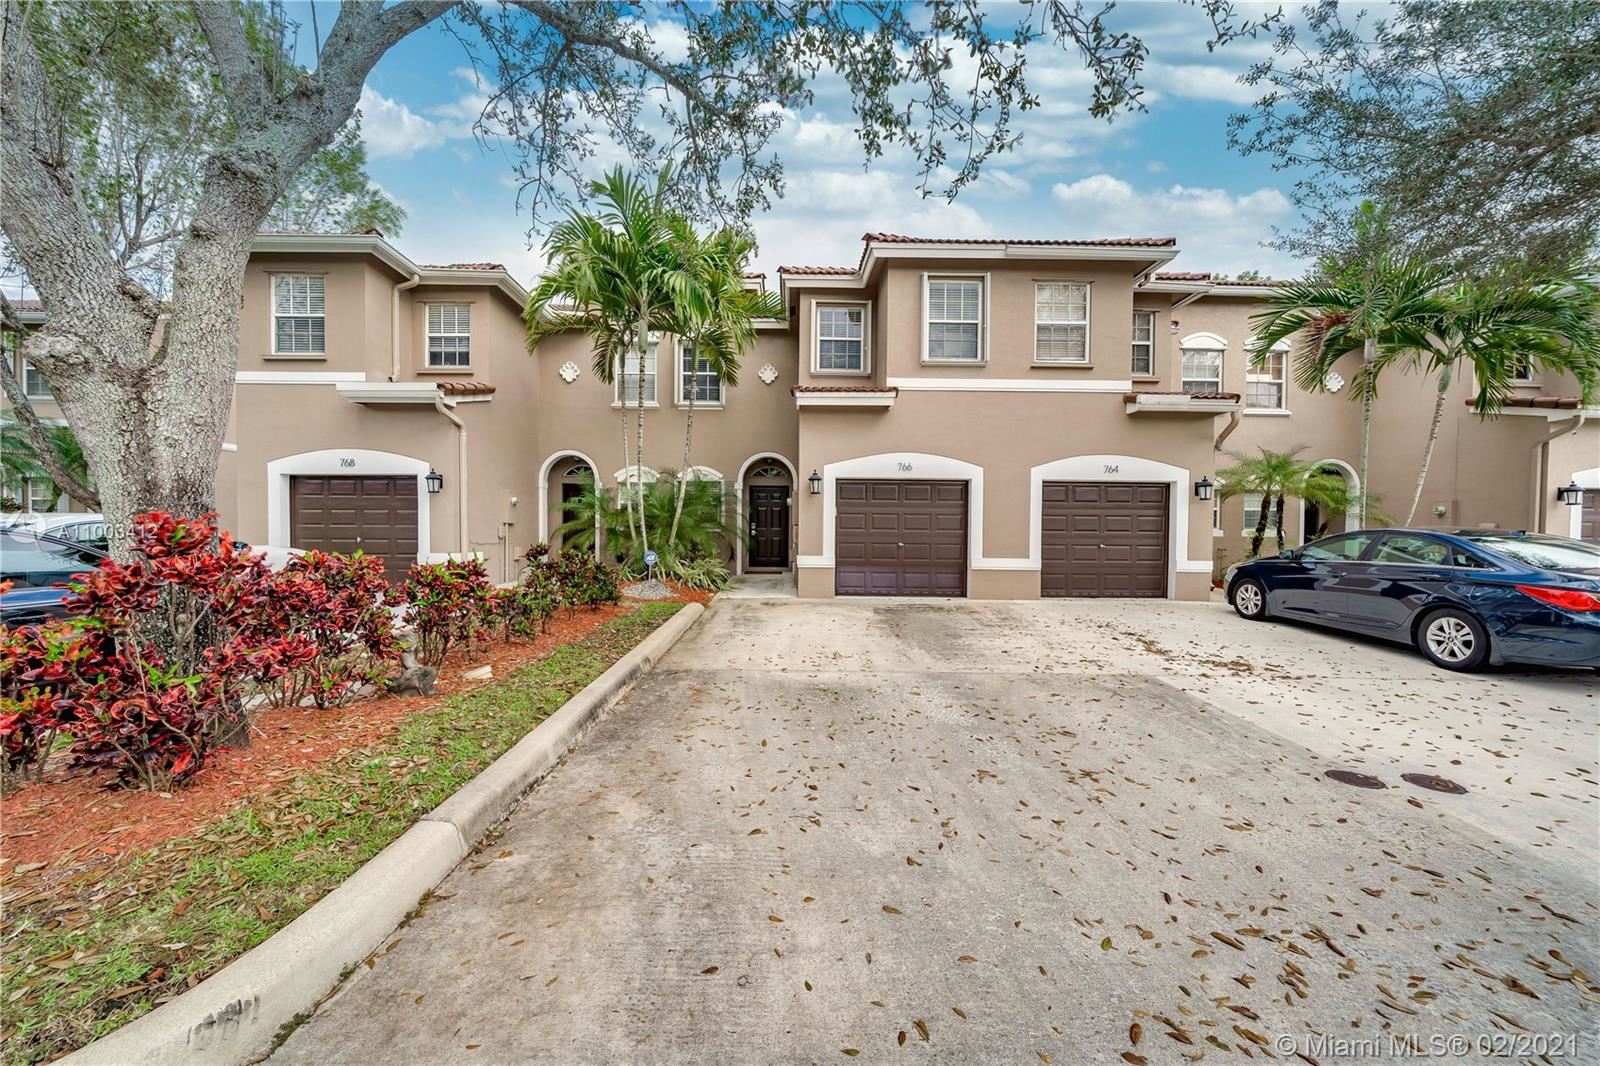 766 NW 132nd Ave, Plantation, FL 33325 - #: A11003412